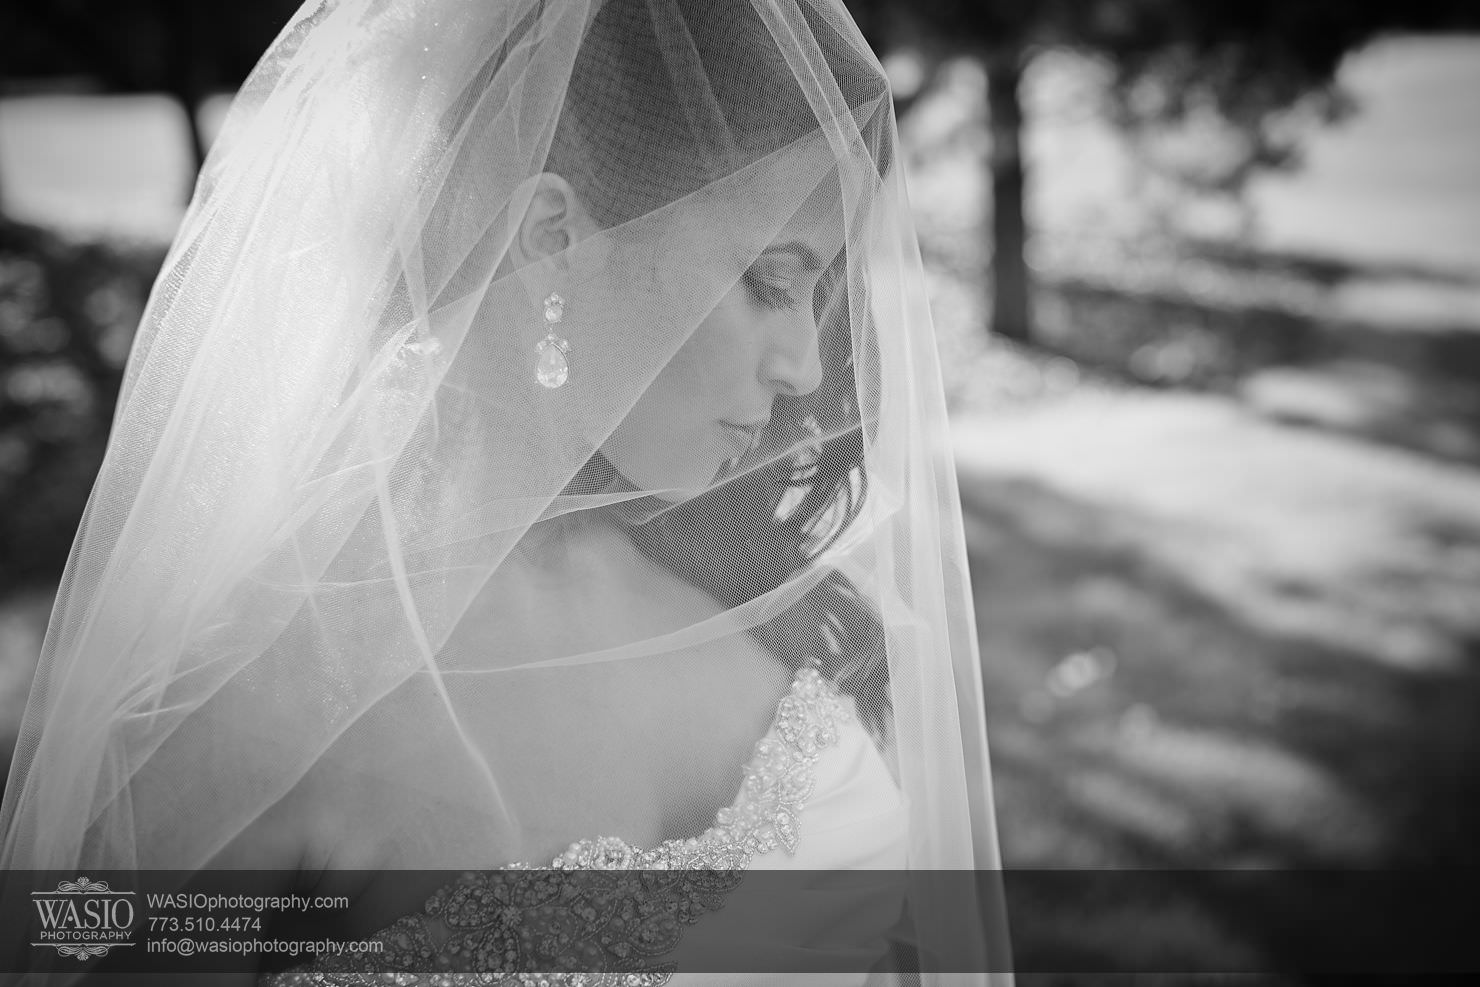 031_Chicago-Spring-Wedding_Chrissy-Andrew_0O3A2211 Chicago Spring Wedding - Chrissy + Andrew